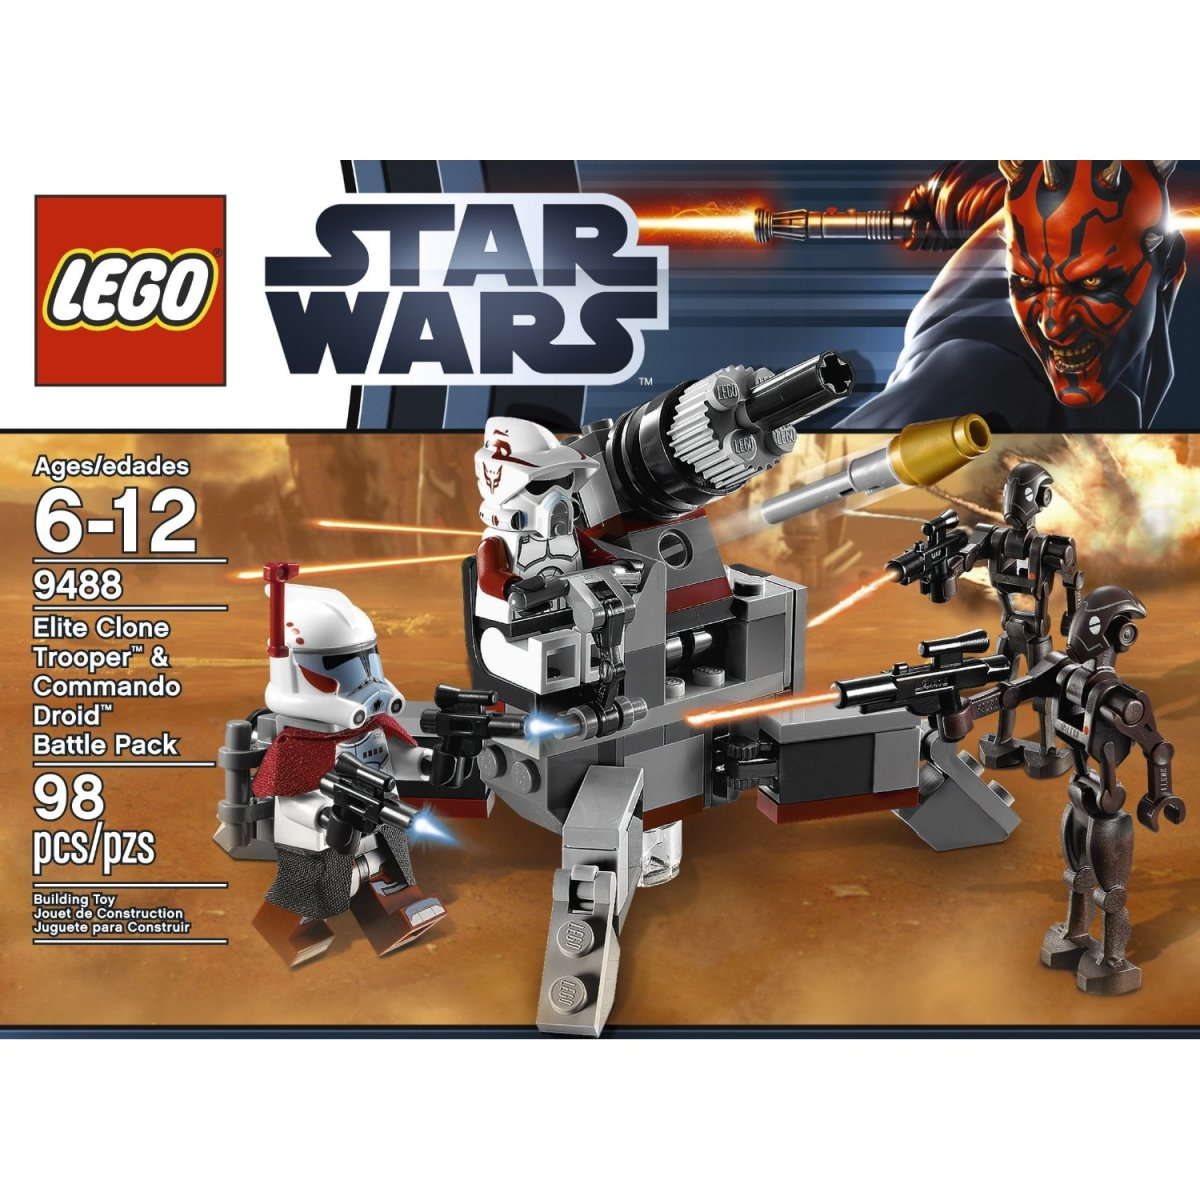 LEGO Star Wars Elite Clone Trooper & Commando Droid Battle Pack 9488 Box